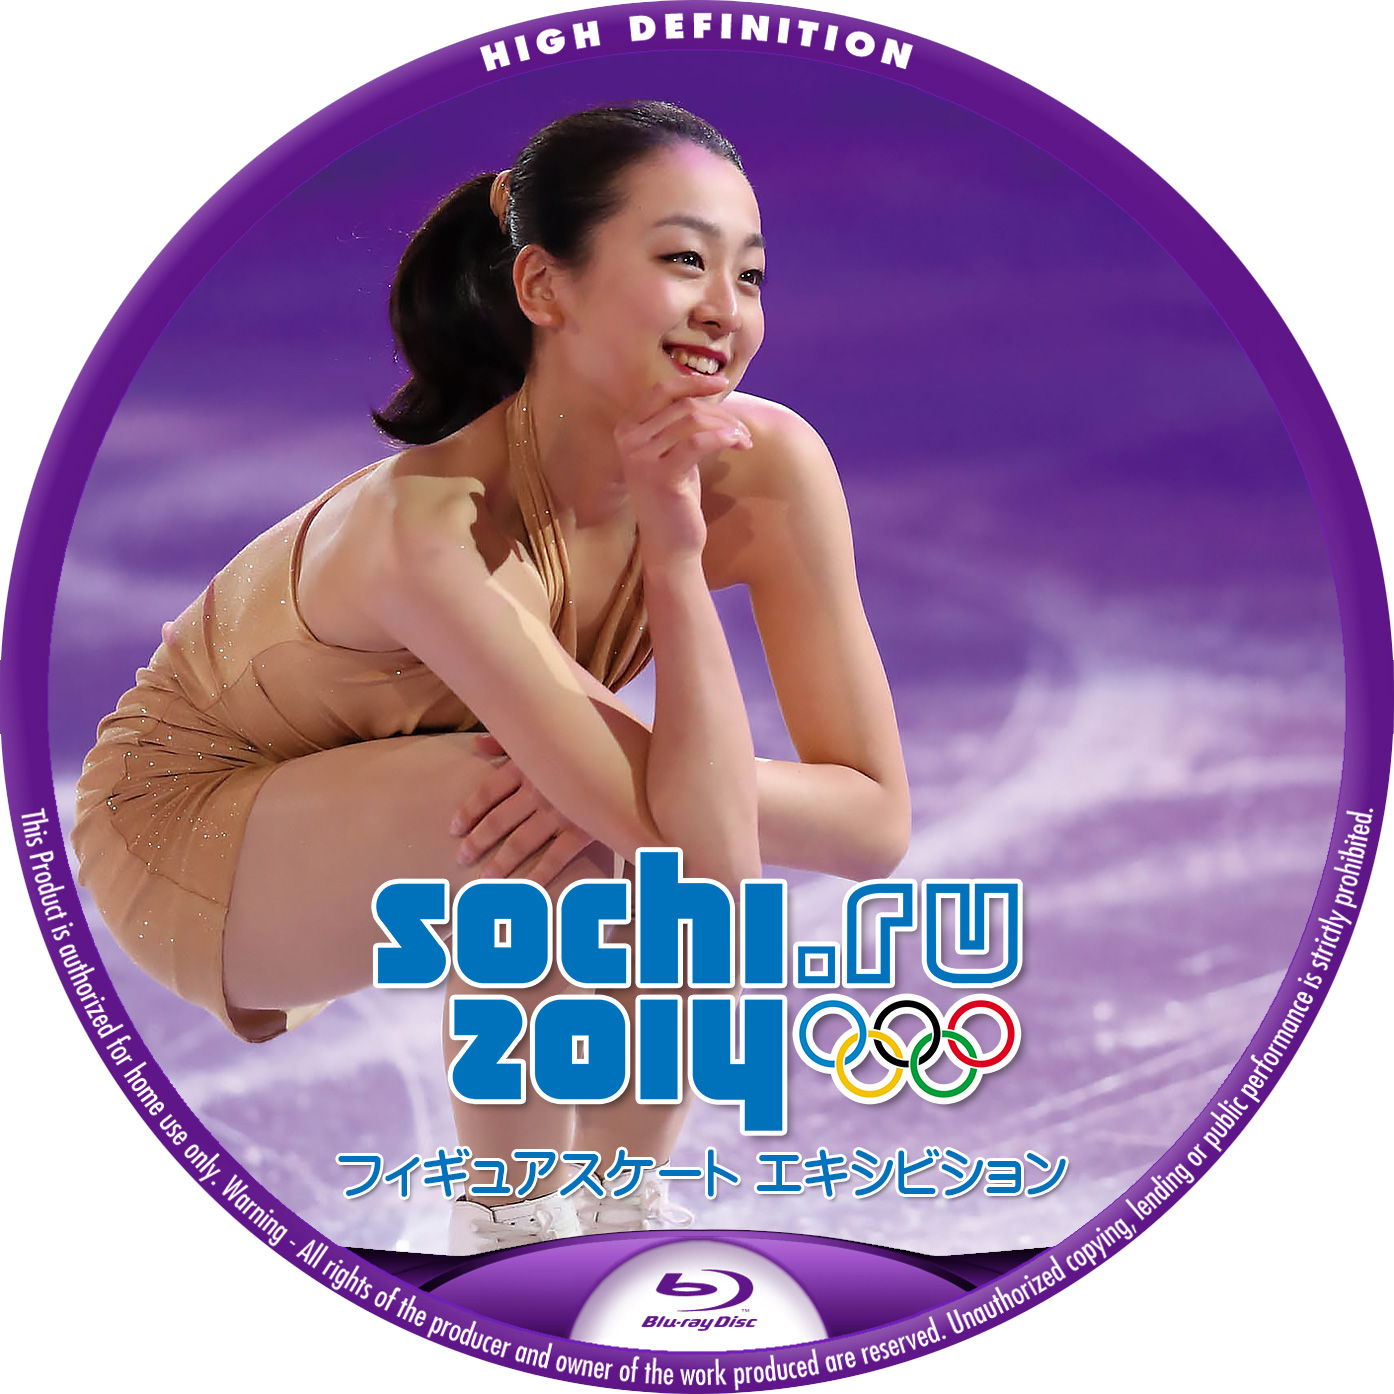 Sochi_Figure_Exhibition-BDc1